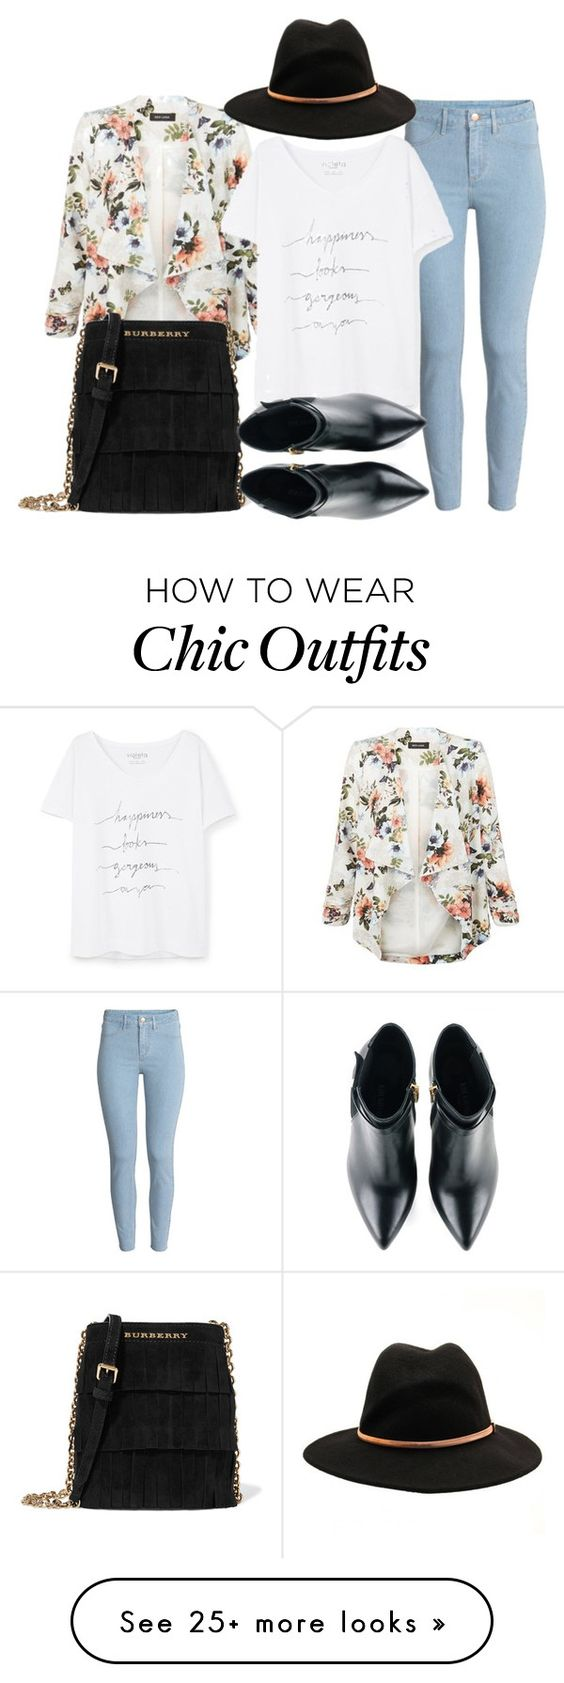 """Urban & Chic Outfit For The Summer"" by ashantiannasmith on Polyvore featuring New Look, H&M, Burberry, Violeta by Mango, Ted Baker and Kim Kwang"